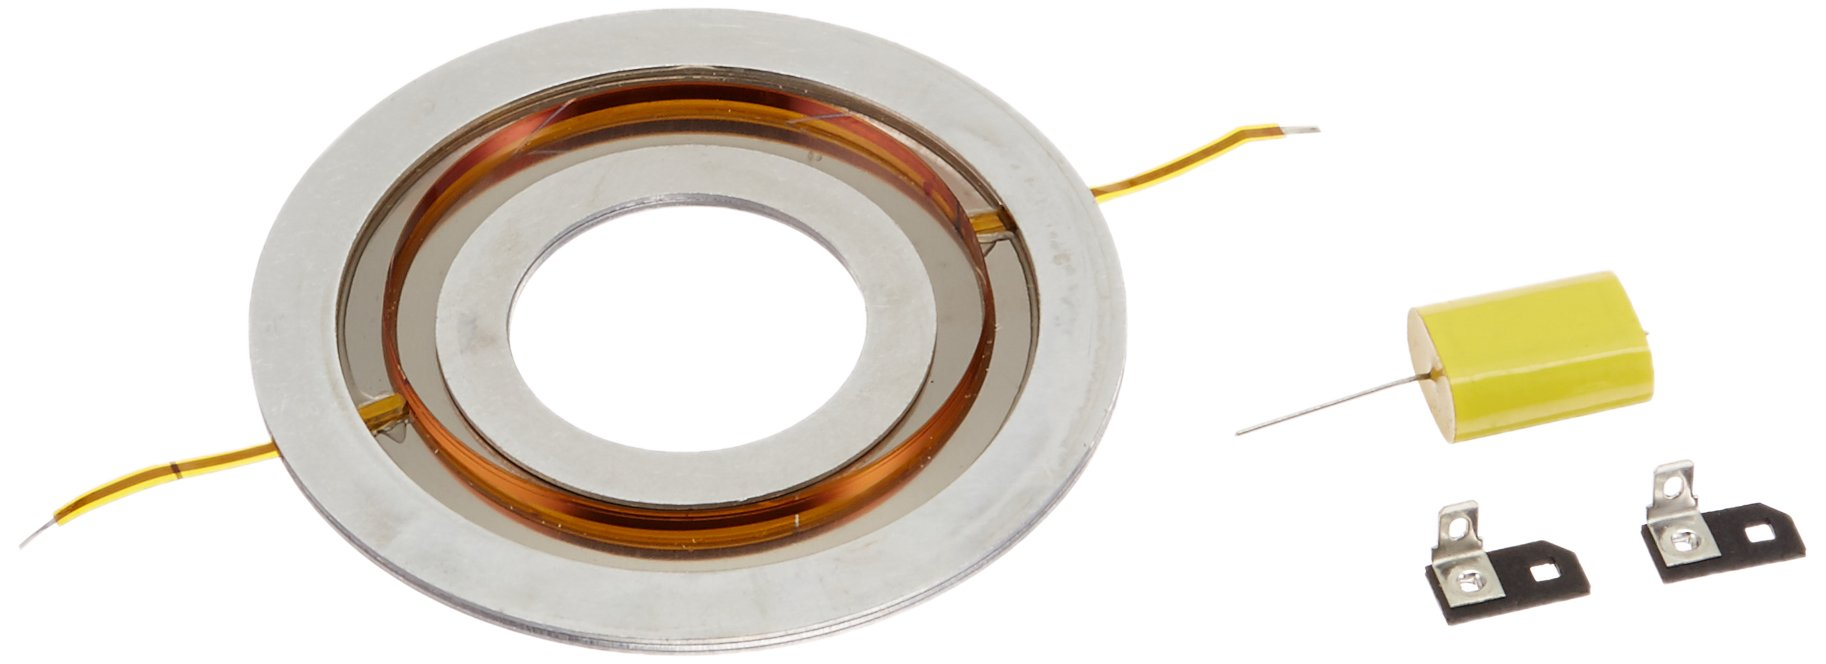 PYRAMID TW67VC Replacement Voice Coil & Diaphragm For Tw67